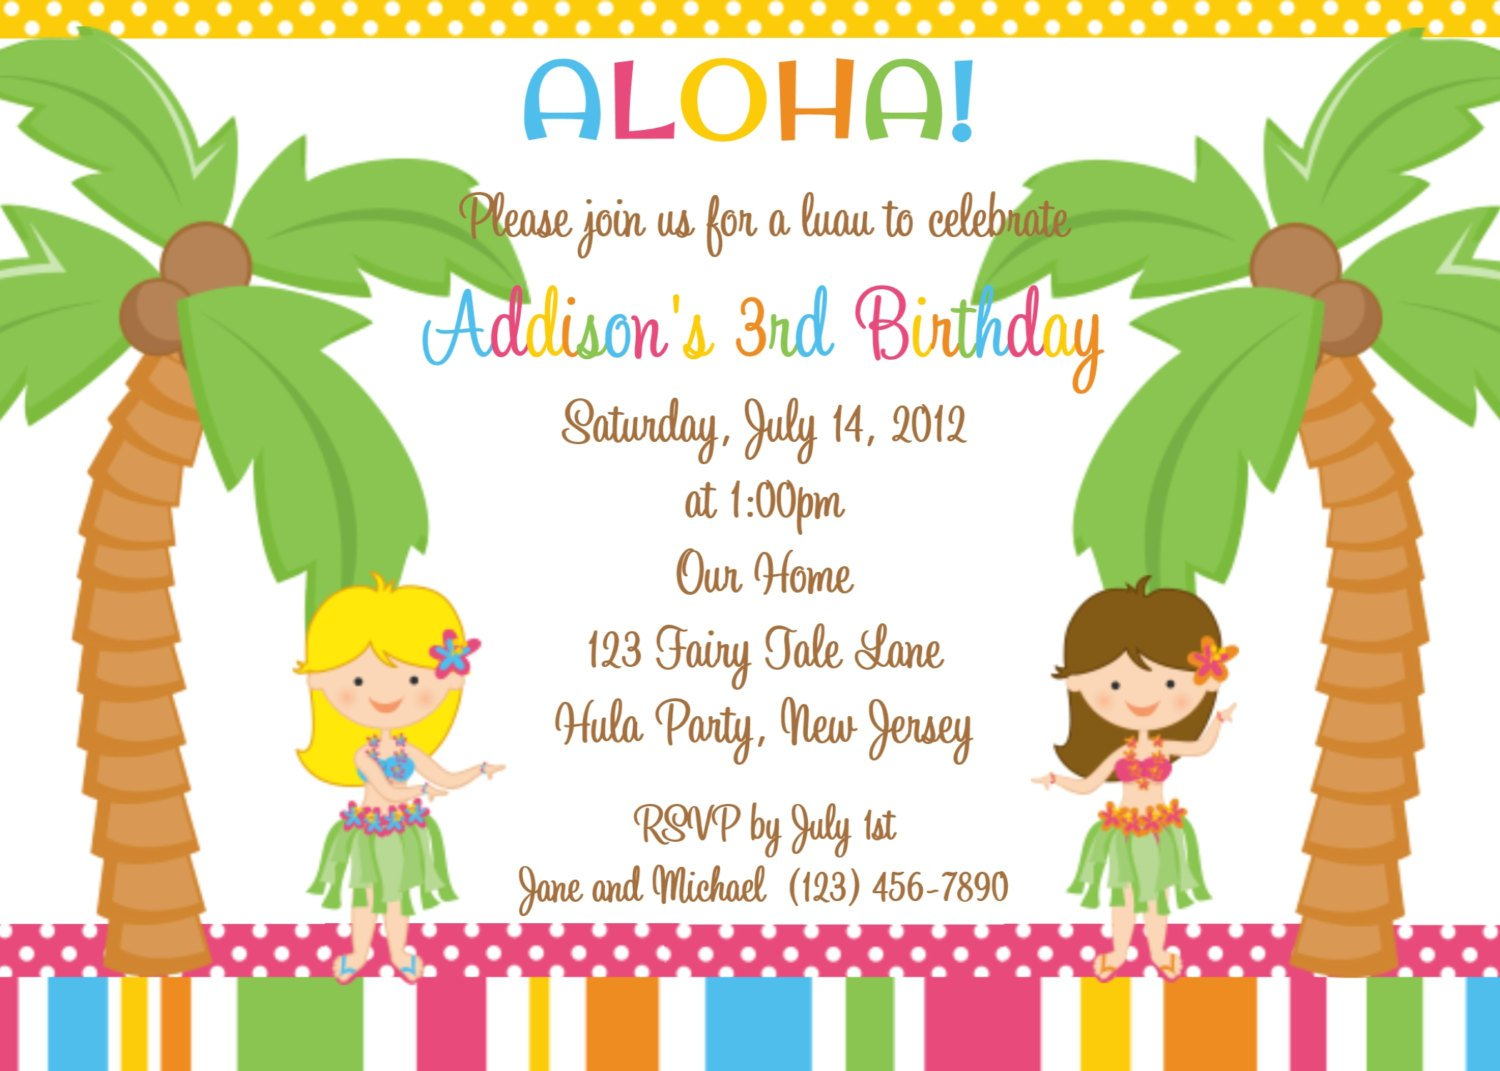 Luau party invitations templates free etamemibawa luau party invitations templates free stopboris Choice Image